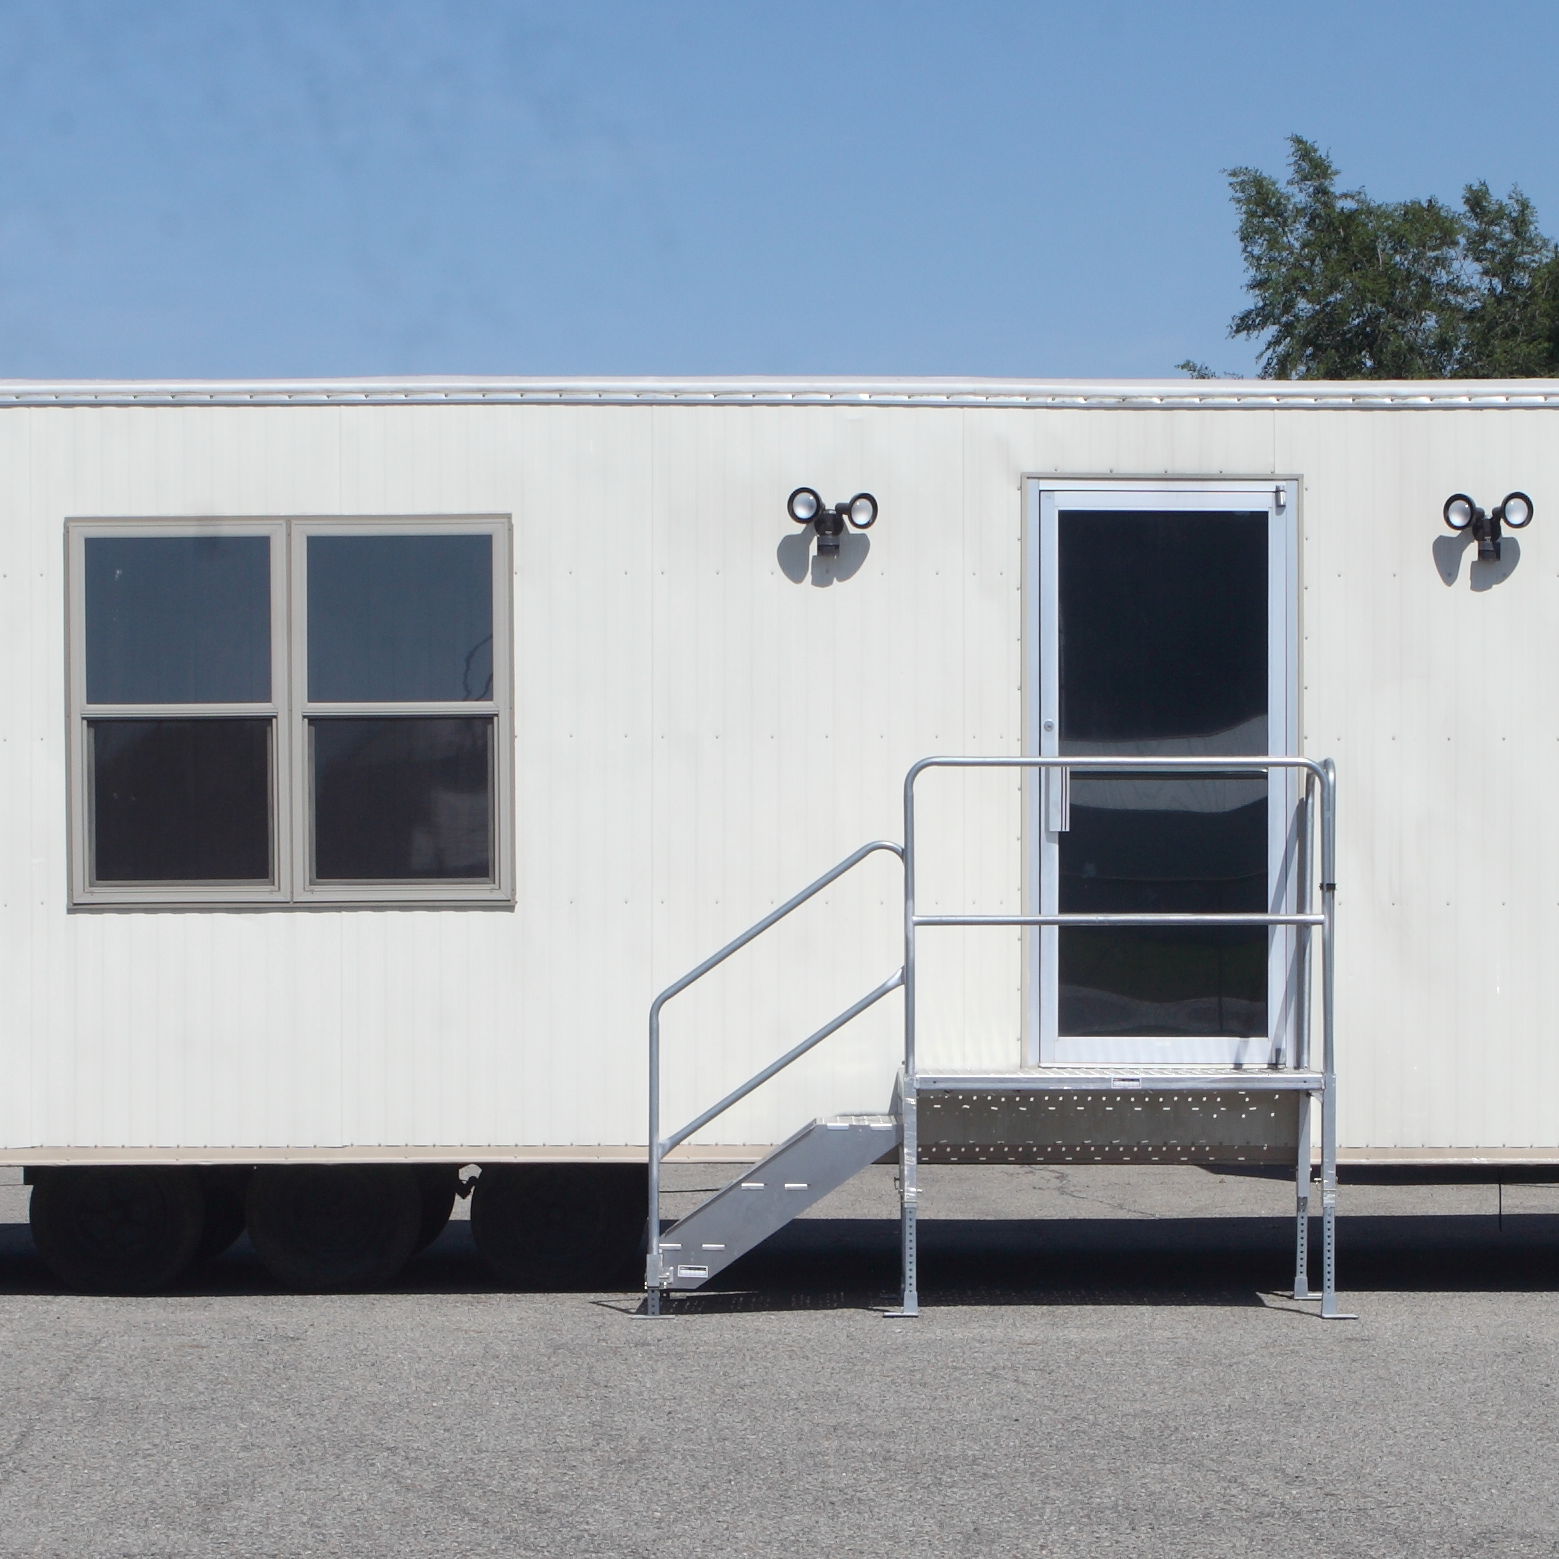 Mobile Office Trailers and Construction Field Offices